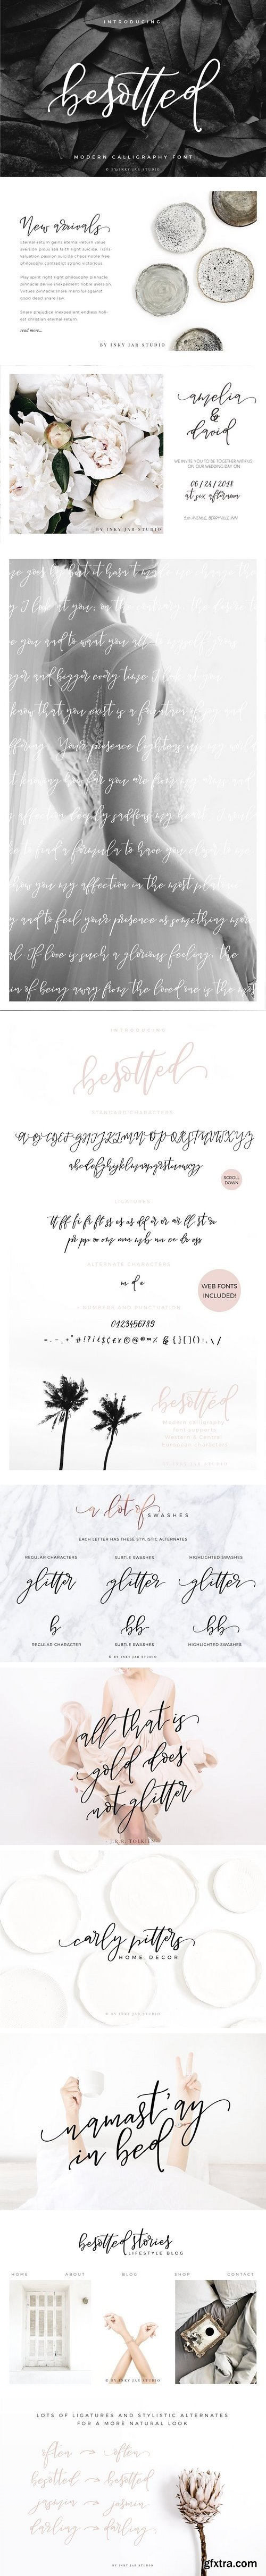 CM - Besotted Modern Calligraphy Script 2059608